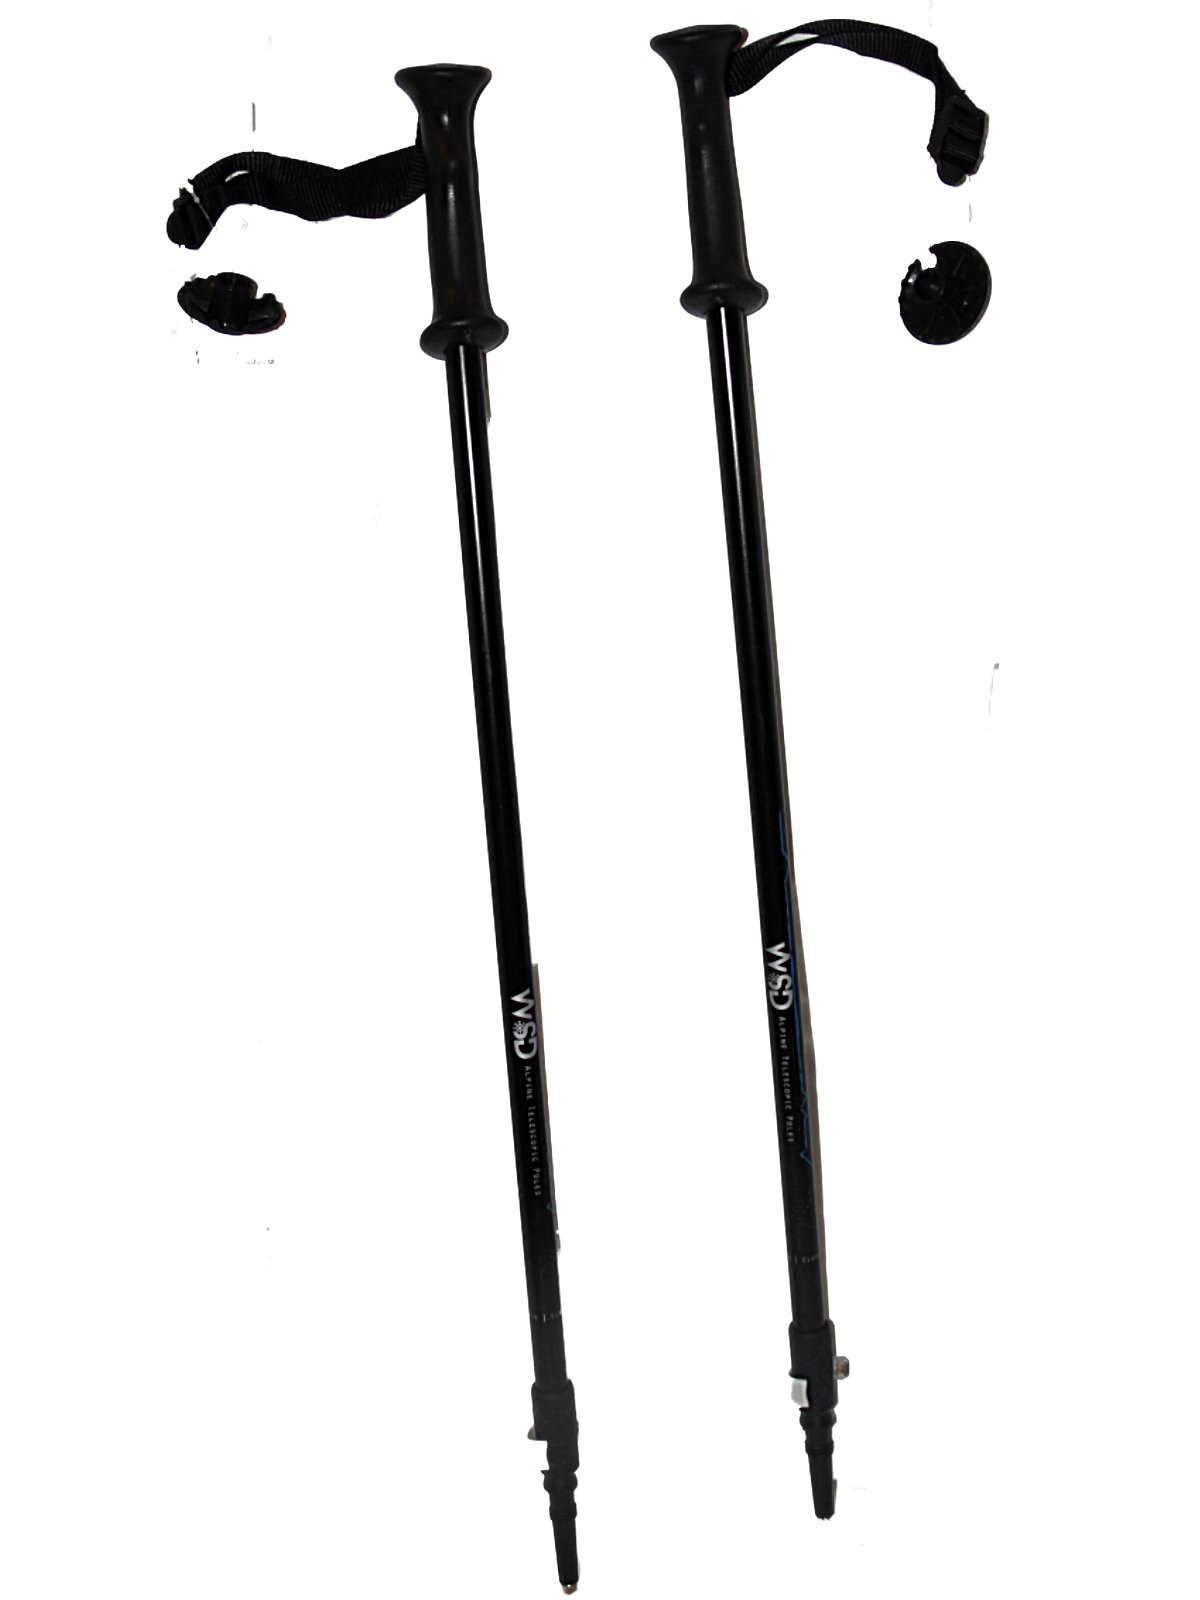 WSD Ski Poles Telescopic Adjustable Collapsible Adult Aluminum Downhill/Alpine, Black/Blue/Silver Pair with Baskets